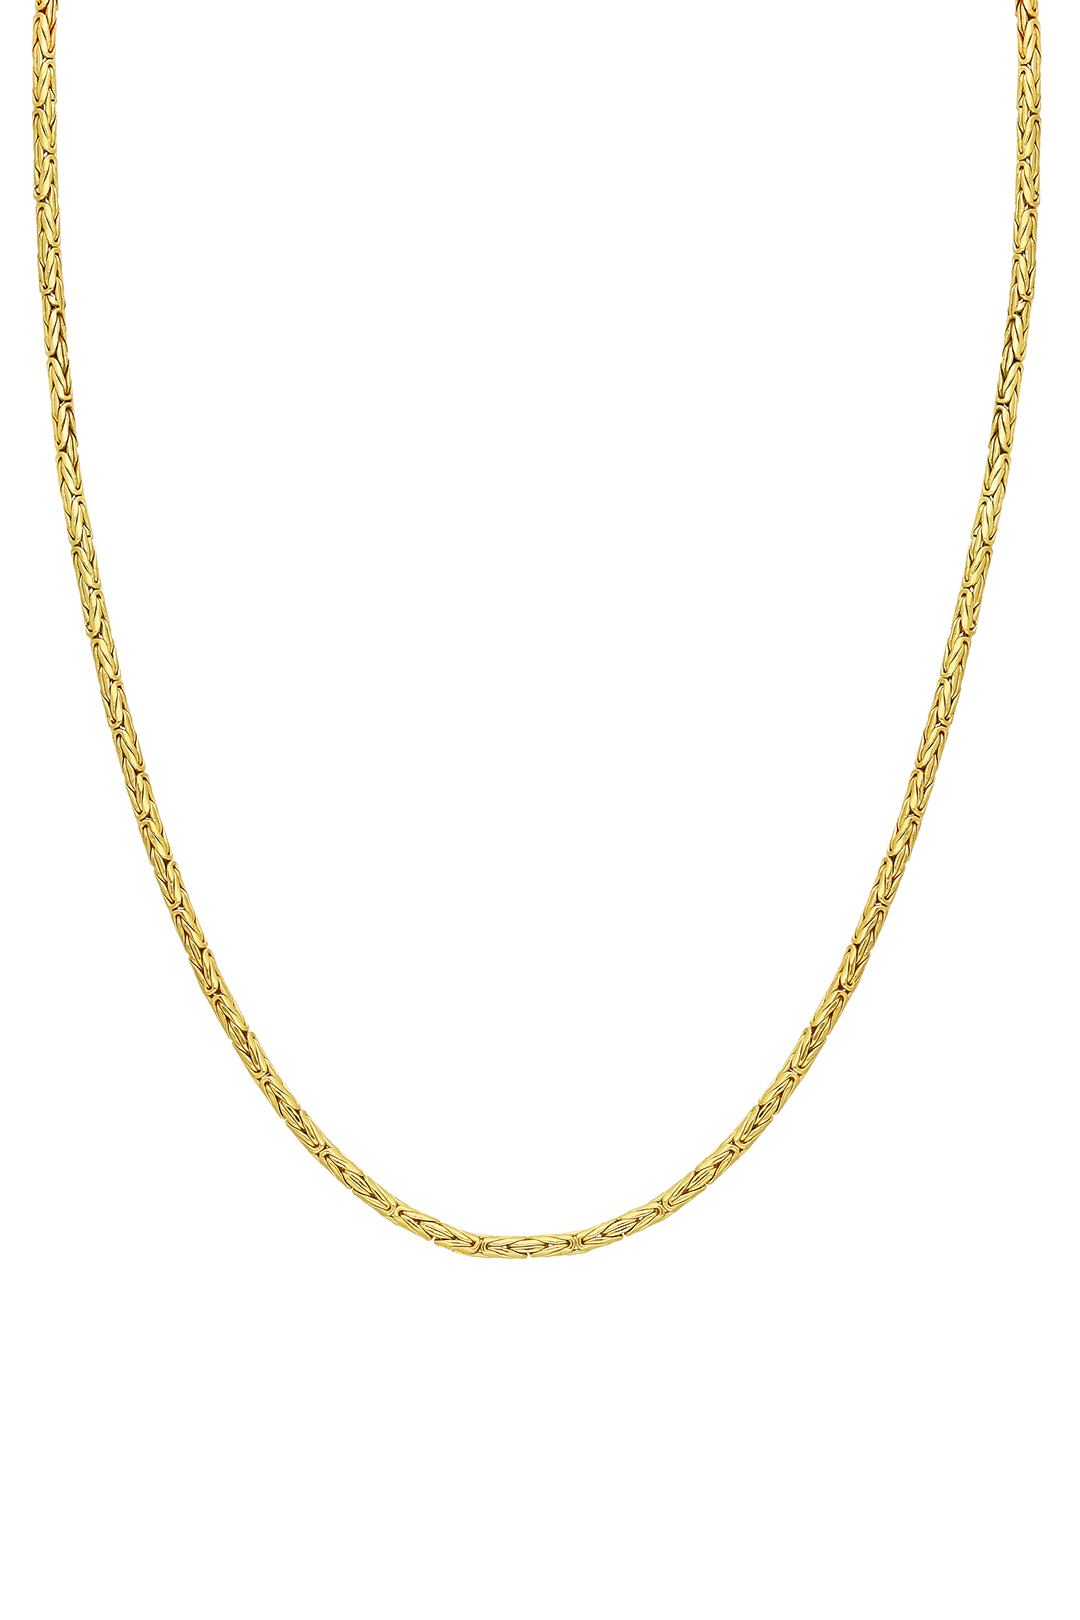 SHAPED RETRO CHAIN NECKLACE